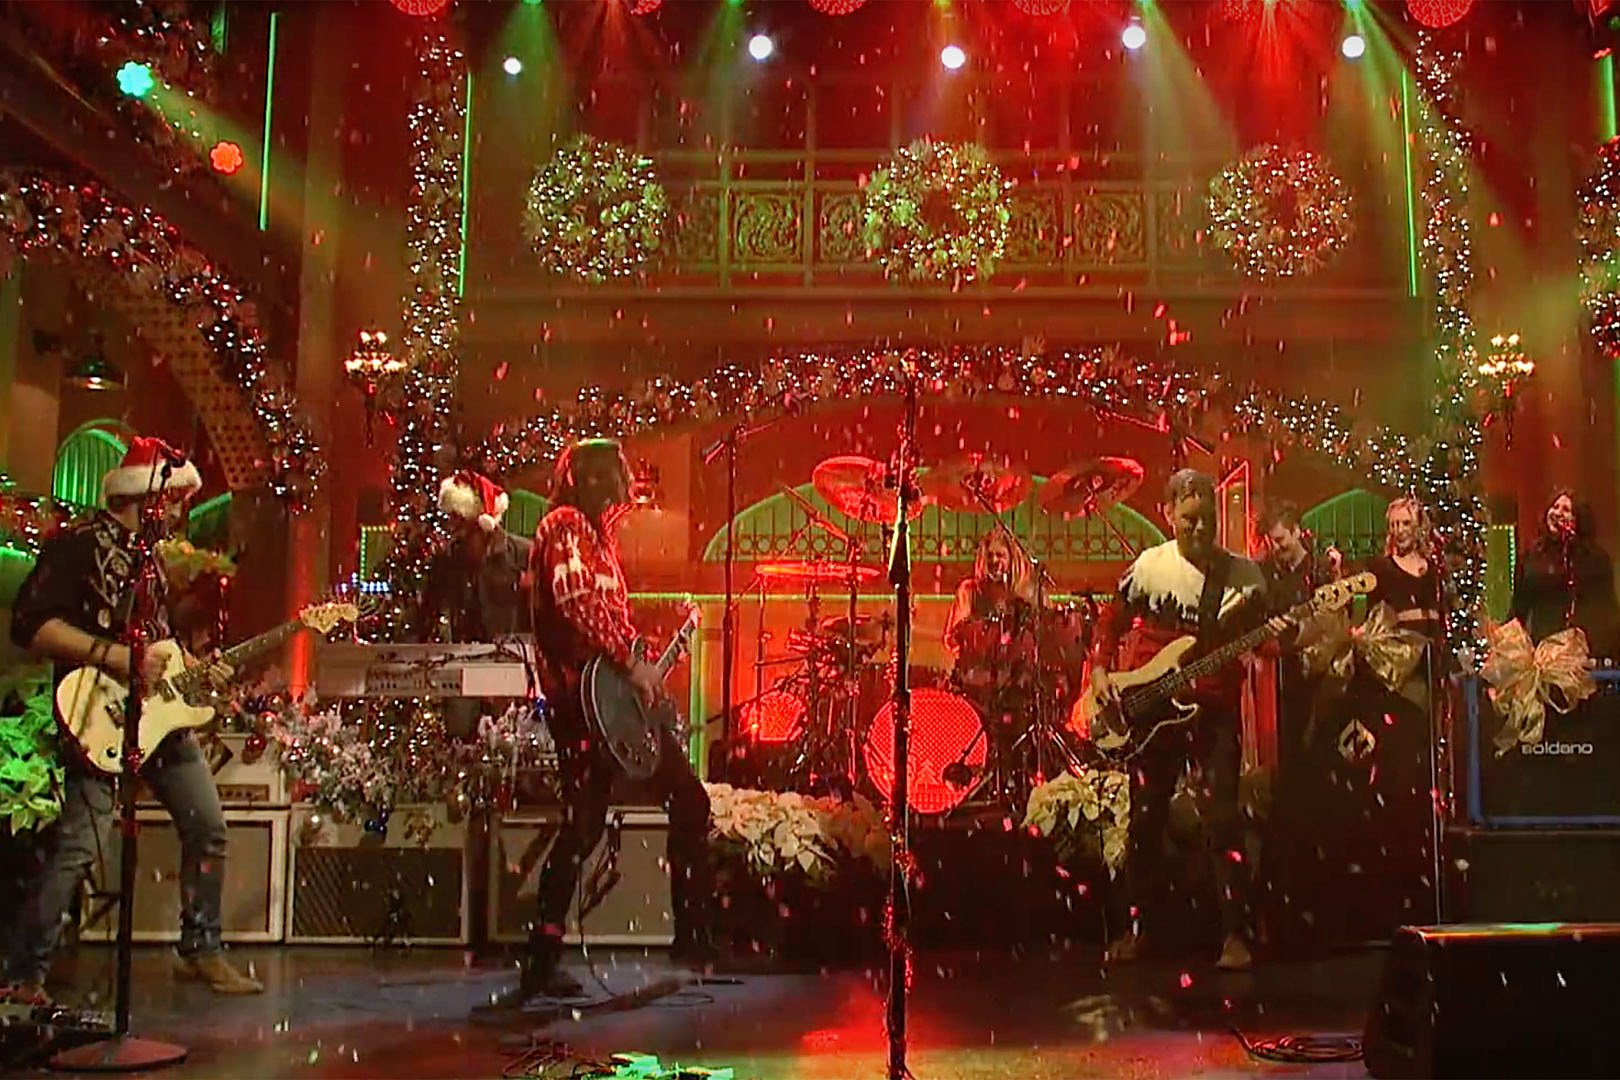 Foo Fighters Snl Christmas.Foo Fighters Celebrate Everlong Christmas On Snl